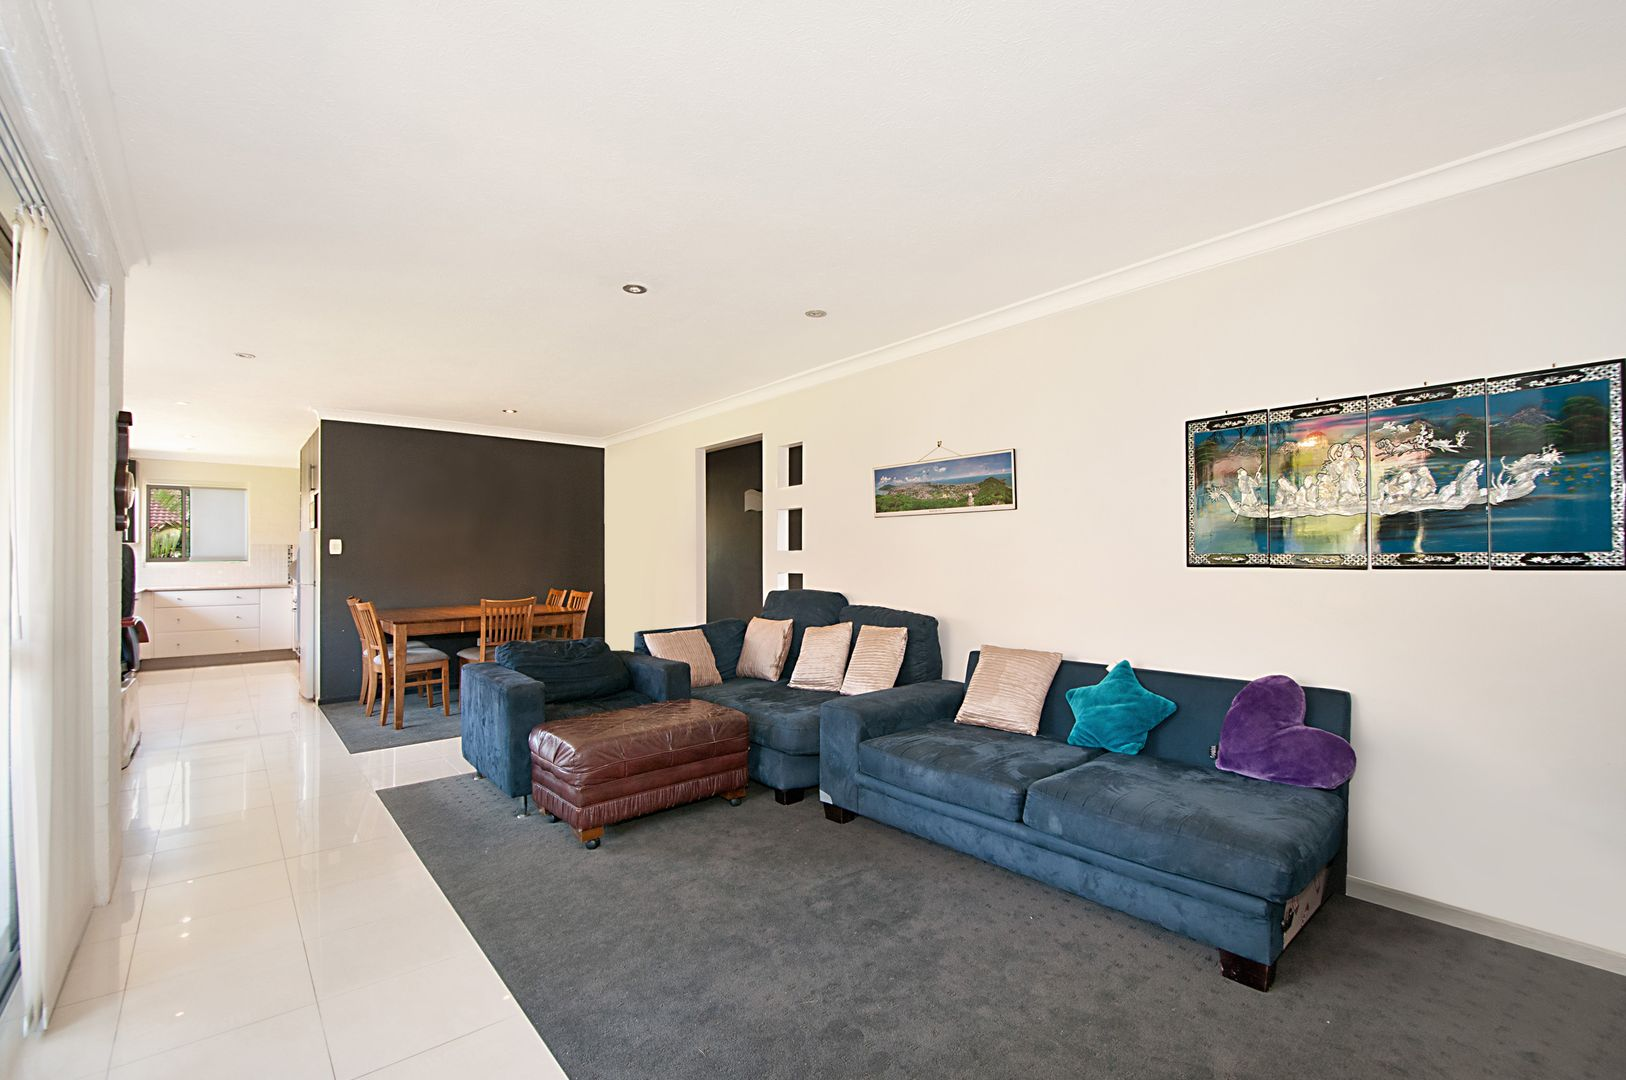 10/55 'James Place' Duet Drive, Mermaid Waters QLD 4218, Image 0